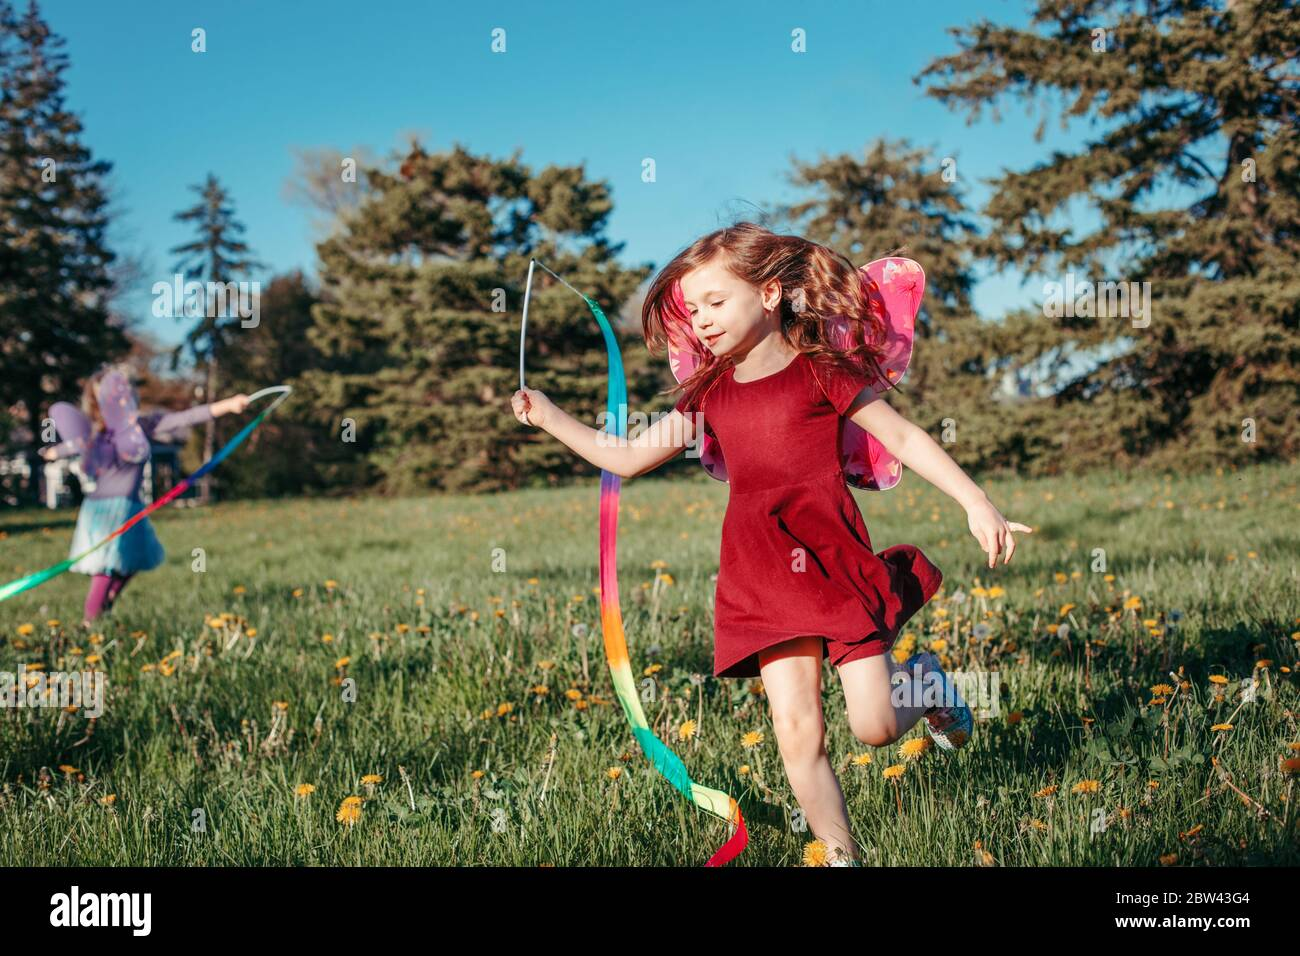 Happy children girls playing with ribbons in park. Cute adorable kids running on meadow playing together. Outdoor summer backyard activity for kids. H Stock Photo